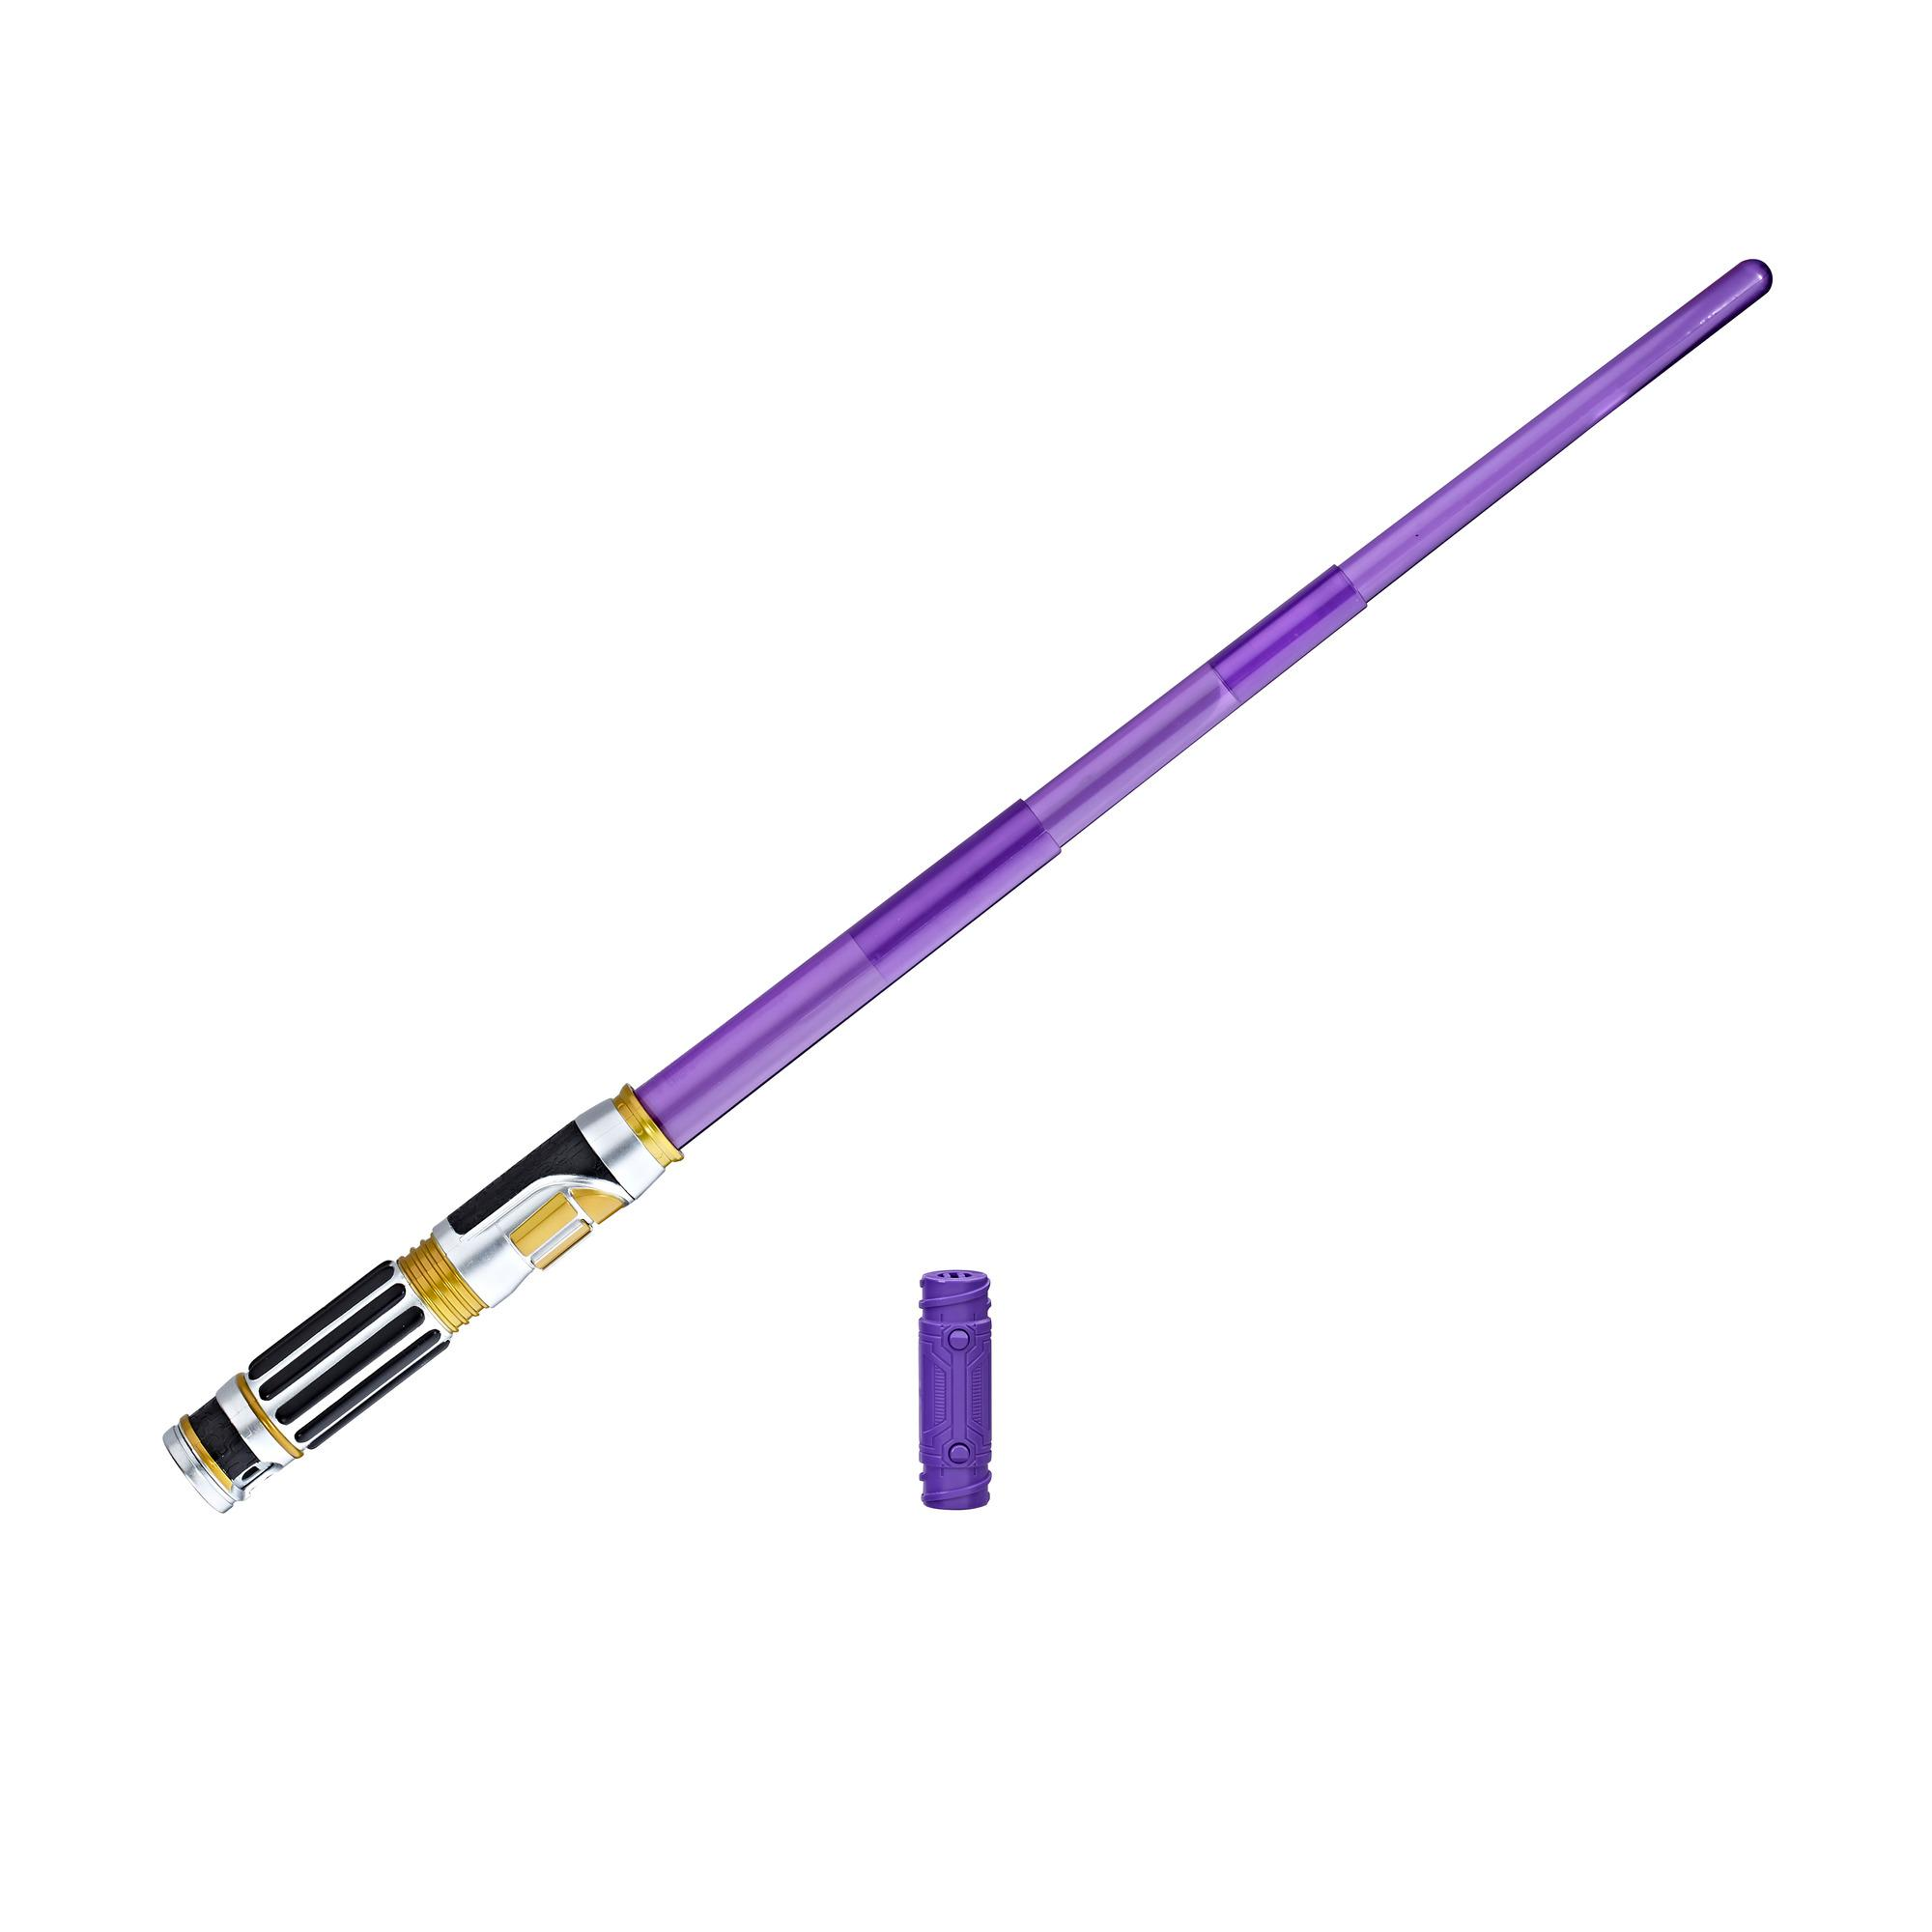 Star Wars: Revenge of the Sith Mace Windu Electronic Lightsaber